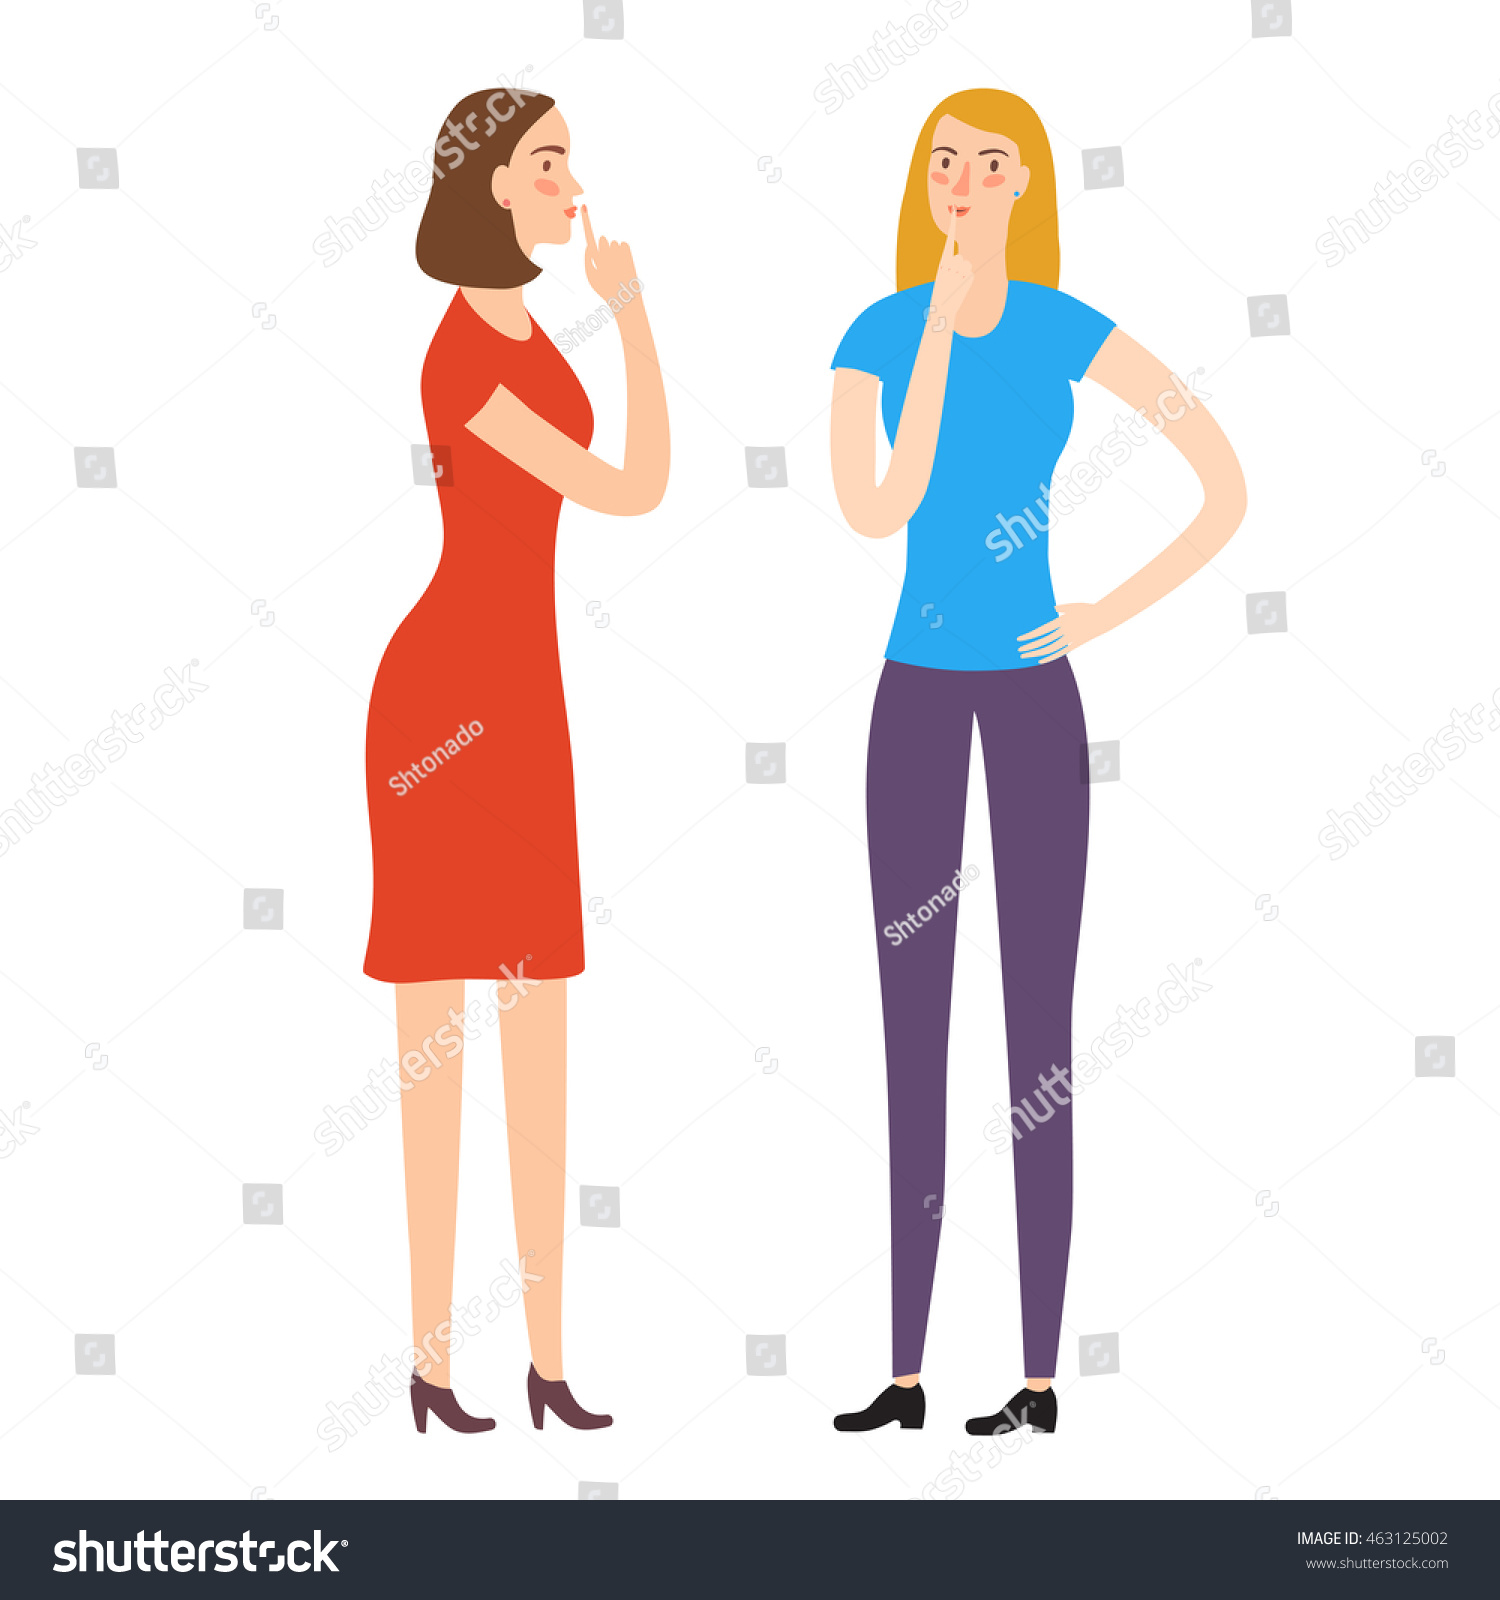 Cartoon girls friends keeping secrets and holding finger on the lips Characters illustrations for your design